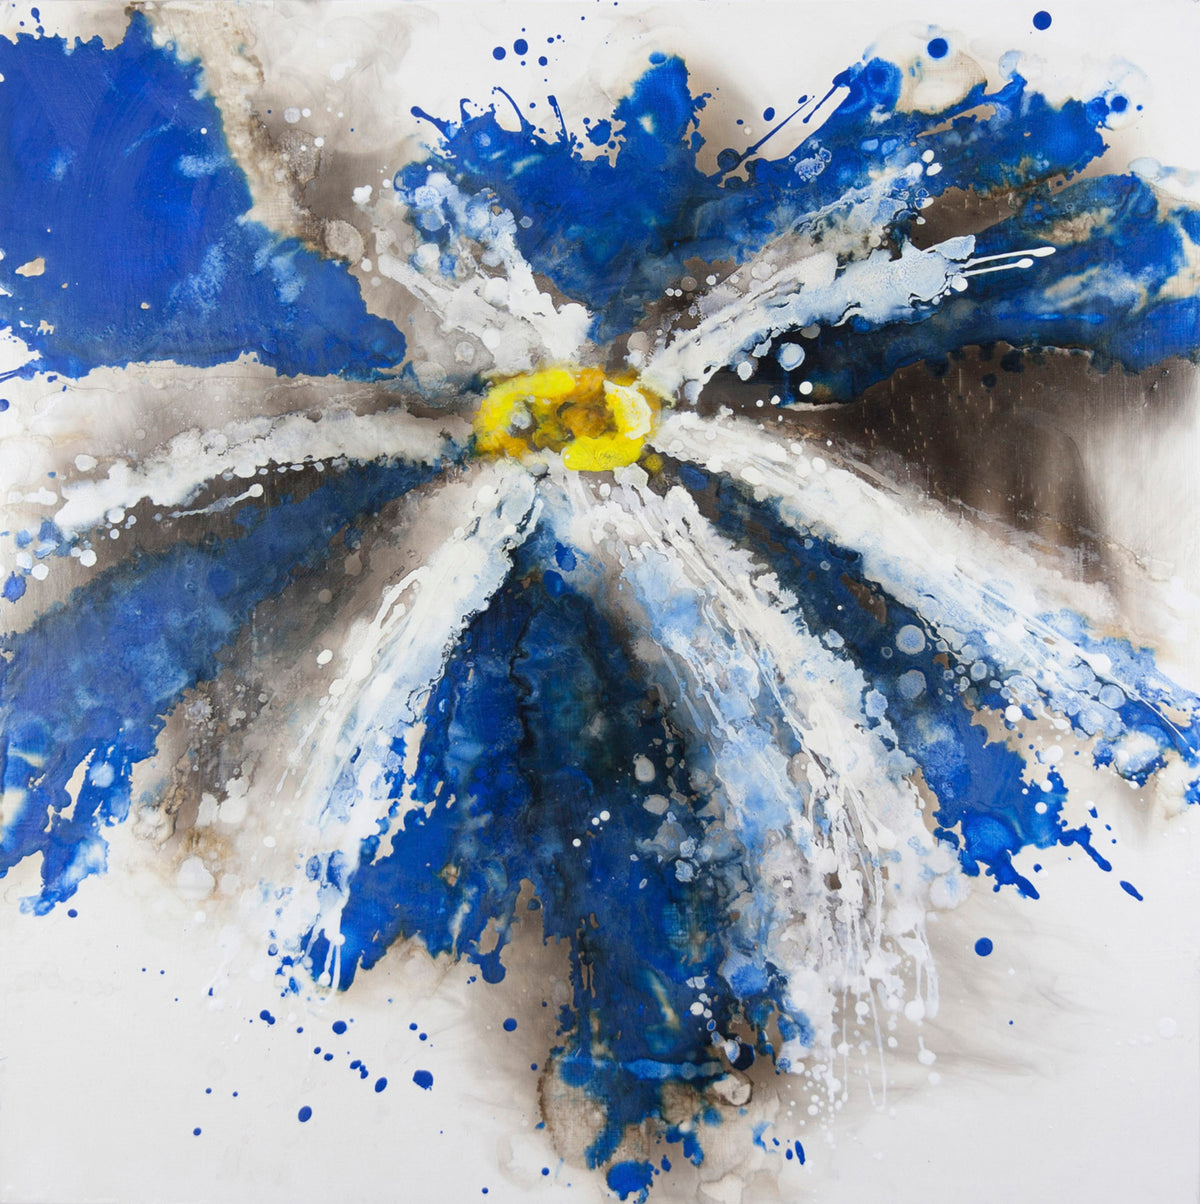 finding, Royden Astrop, British artist, painter, fire painting, painting with fire, fire daisy, daisy painting, flower painting, blue daisy, oil painting